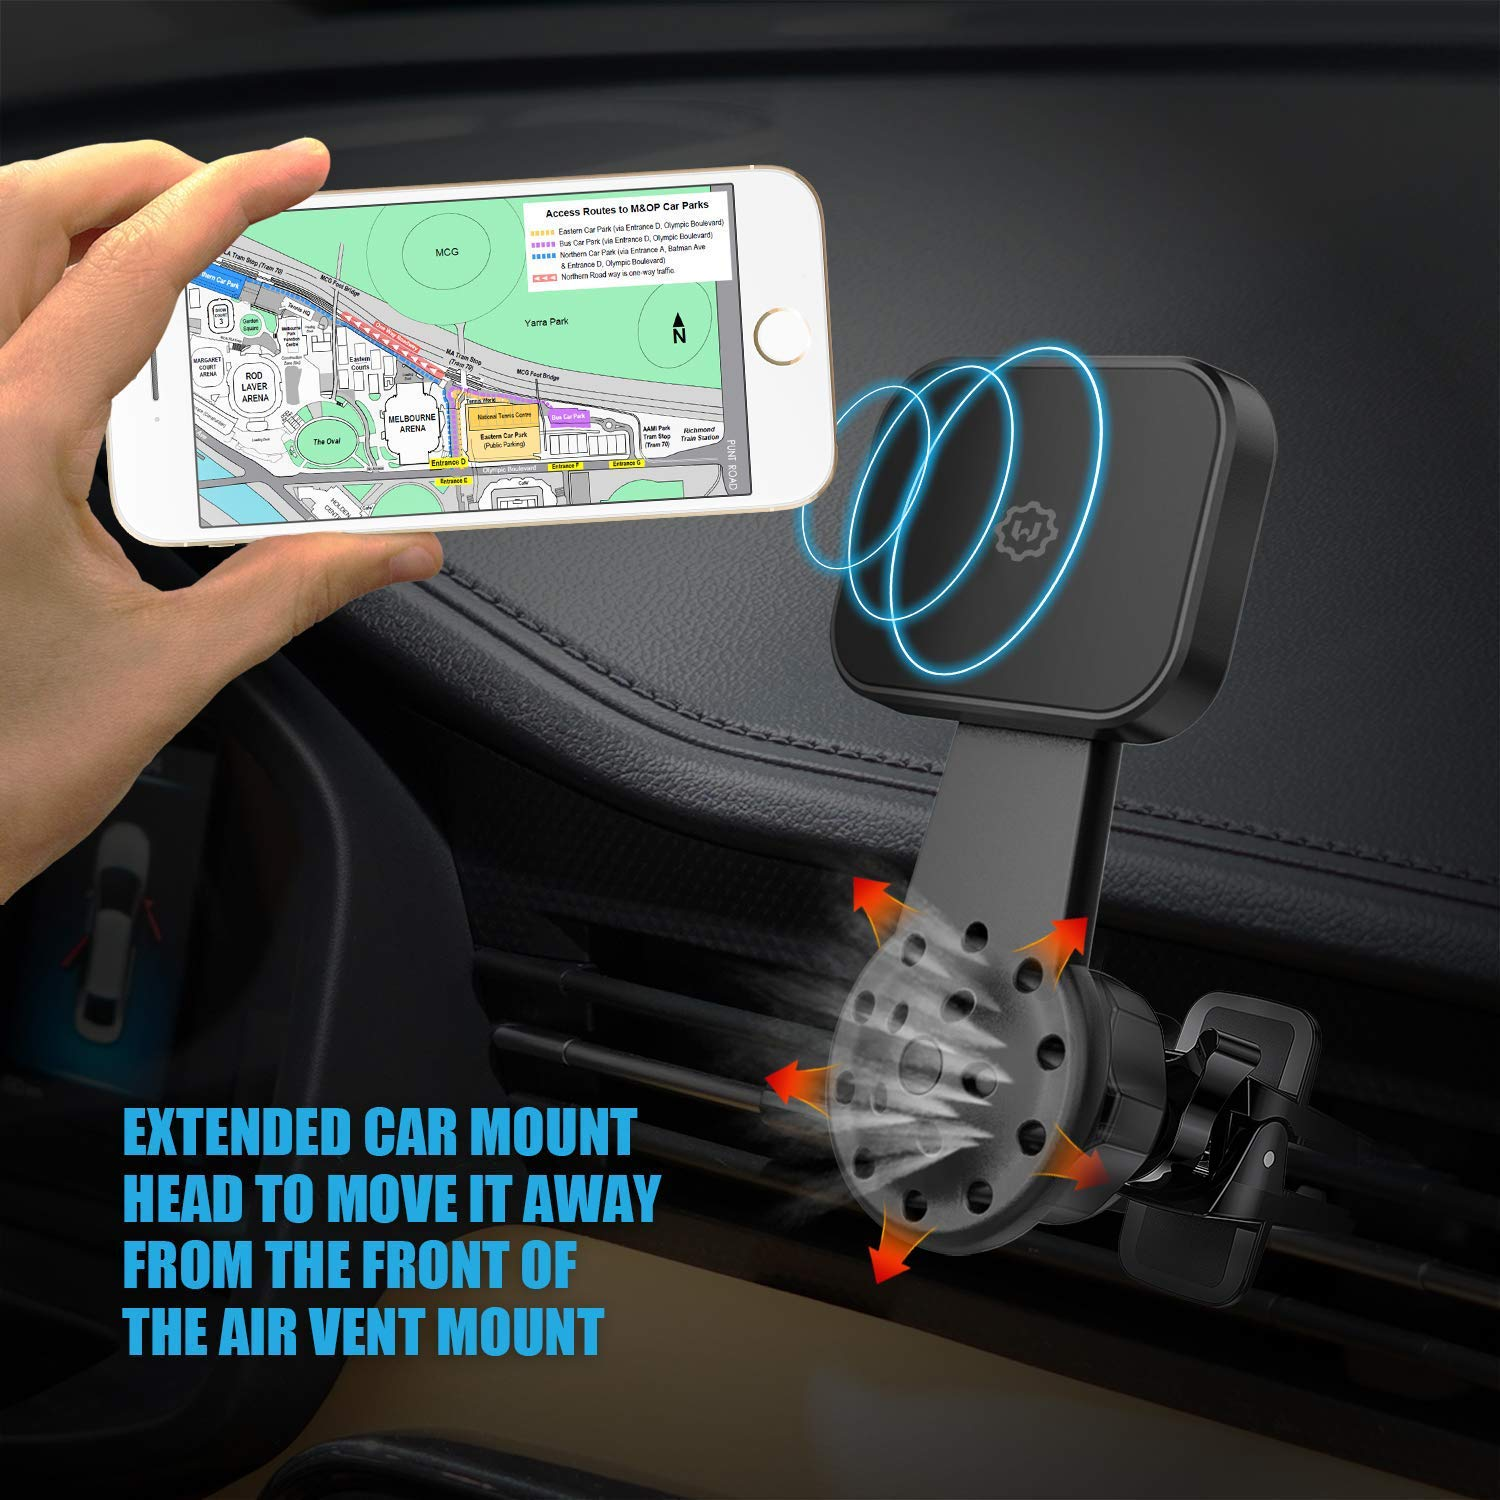 WixGear Universal Air Vent Twist Hole Magnetic Phone Holder for Car for Vertical and Horizontal Vent for All Cell Phones with Fast Swift-Snap Technology Will Not Block Air Vent Flow